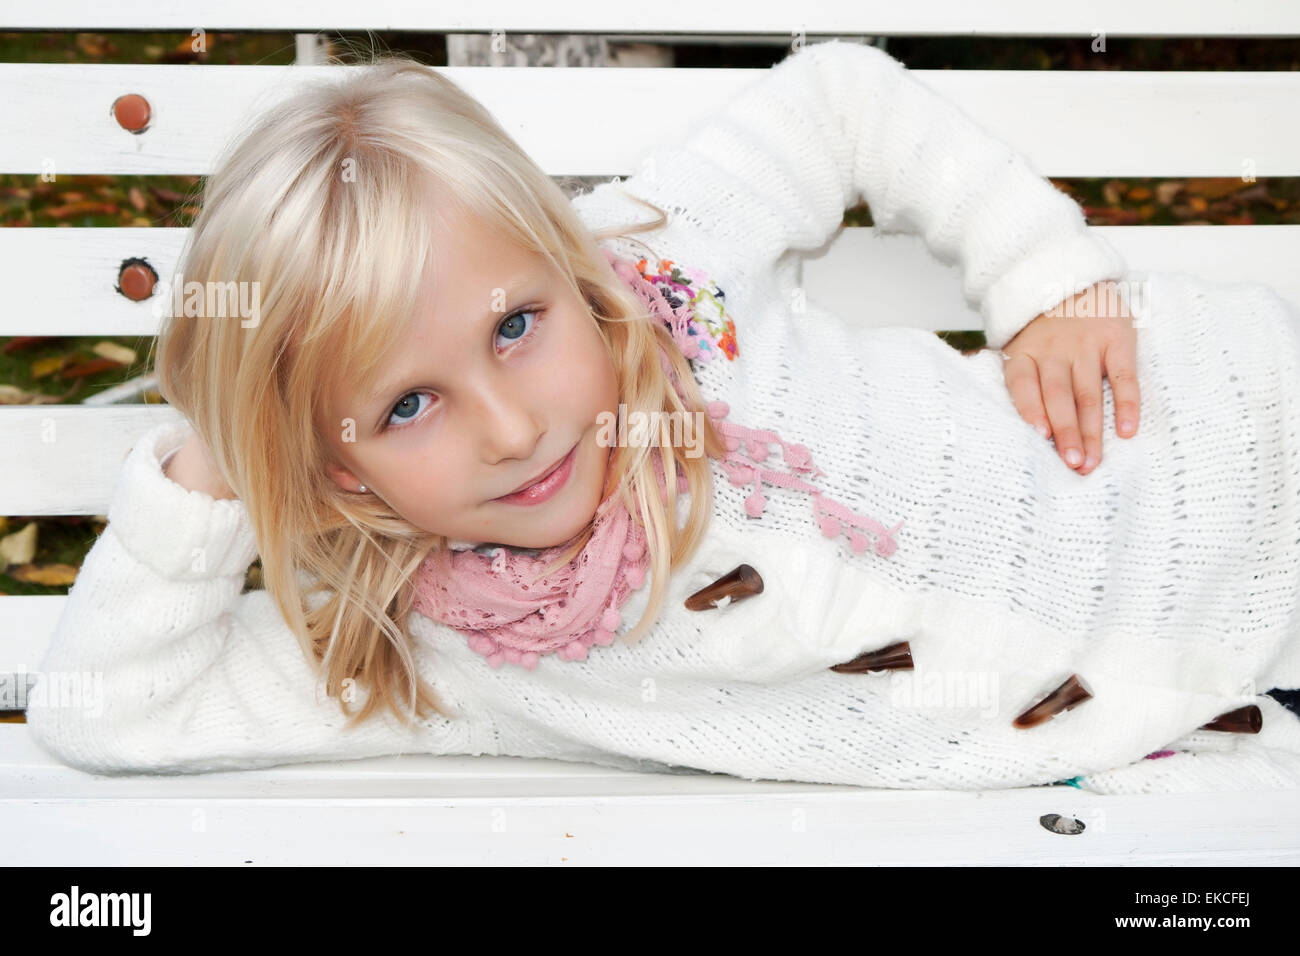 Young girl lying on a bench - Stock Image